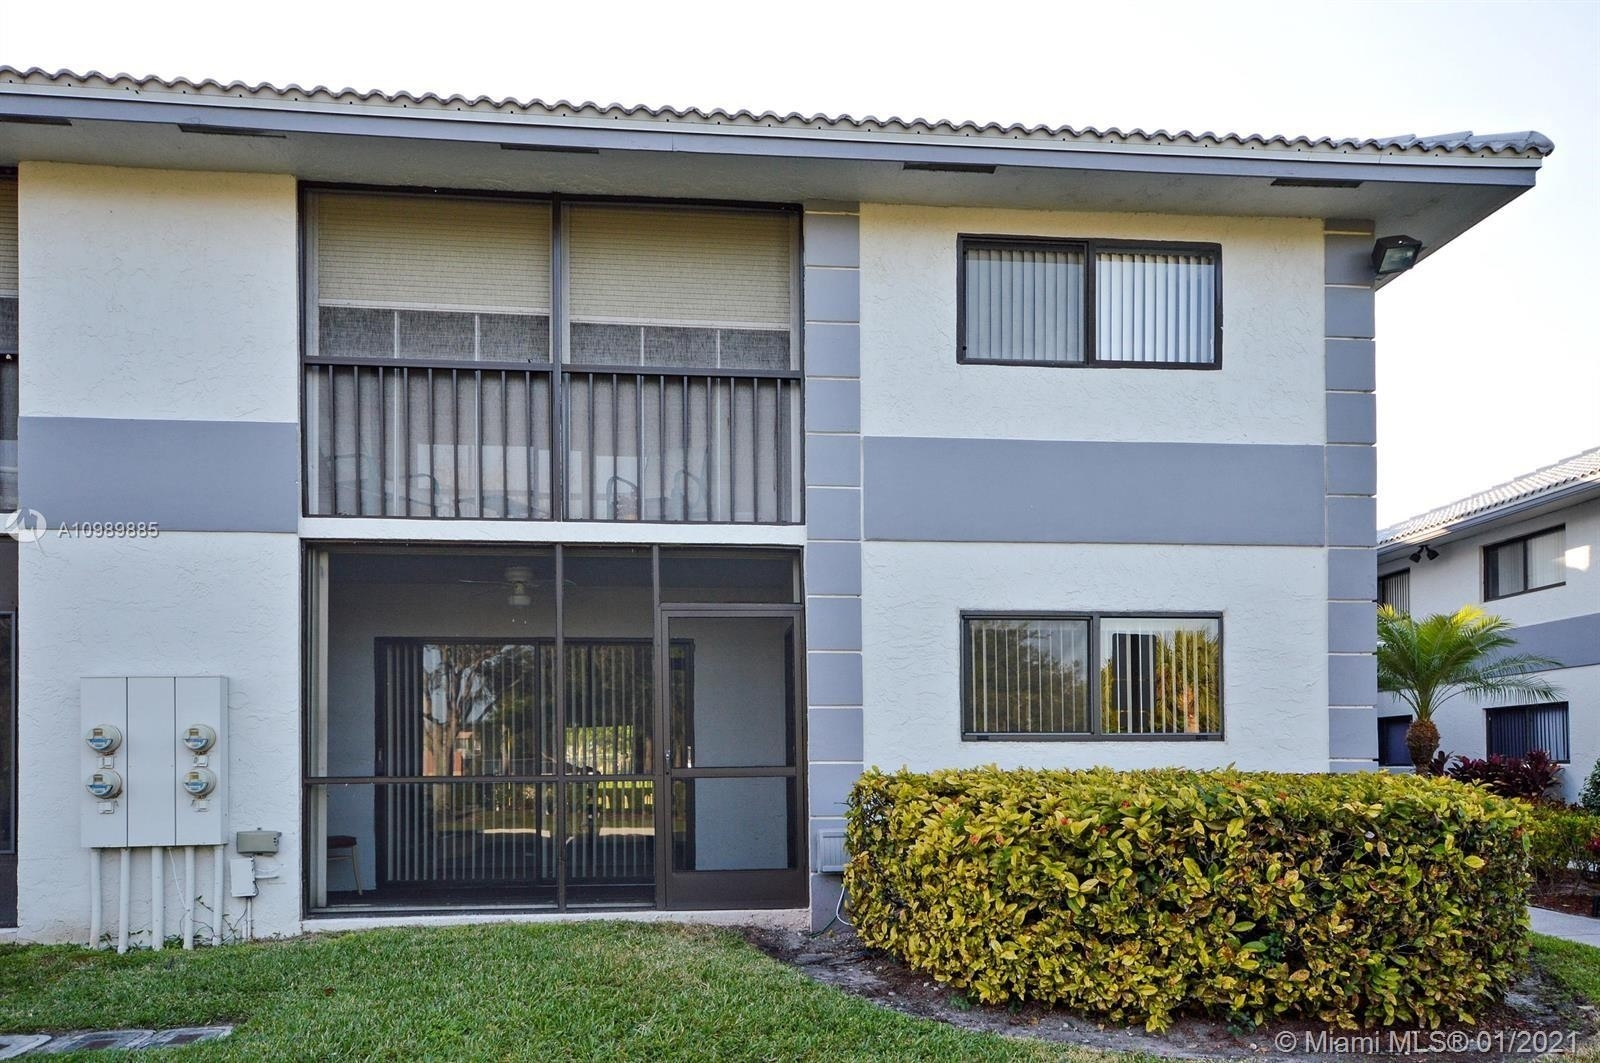 Condominium for Sale at 15251 Lakes Of Delray Blvd , 331 Lakes Of Delray, Delray Beach, FL 33484